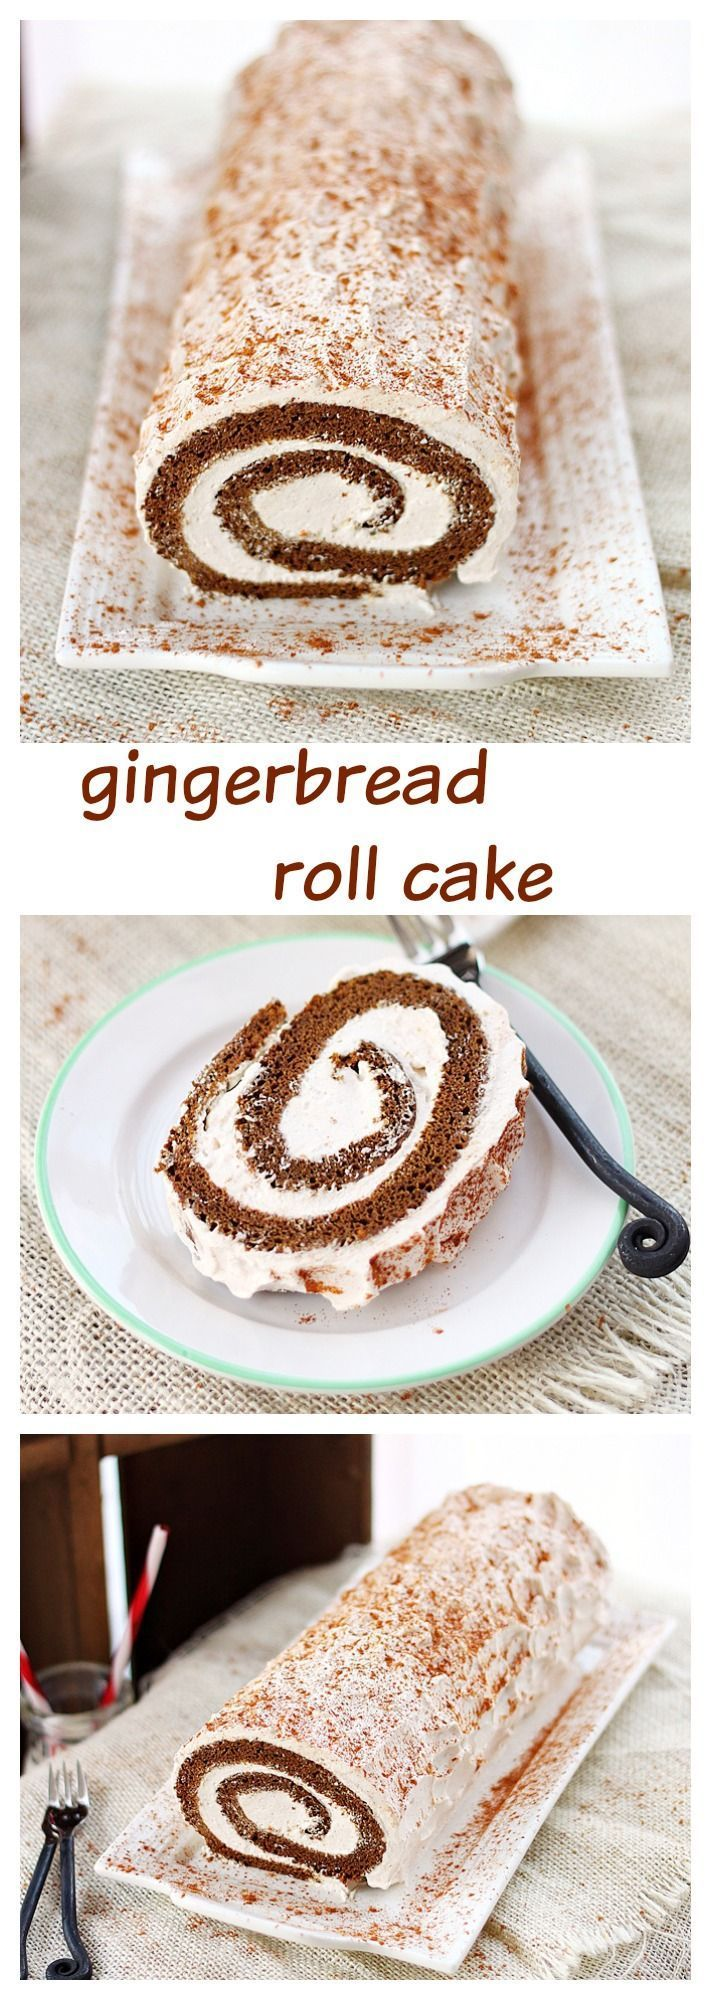 Christmas Cake Filling Ideas : 1000+ ideas about Christmas Gingerbread on Pinterest ...